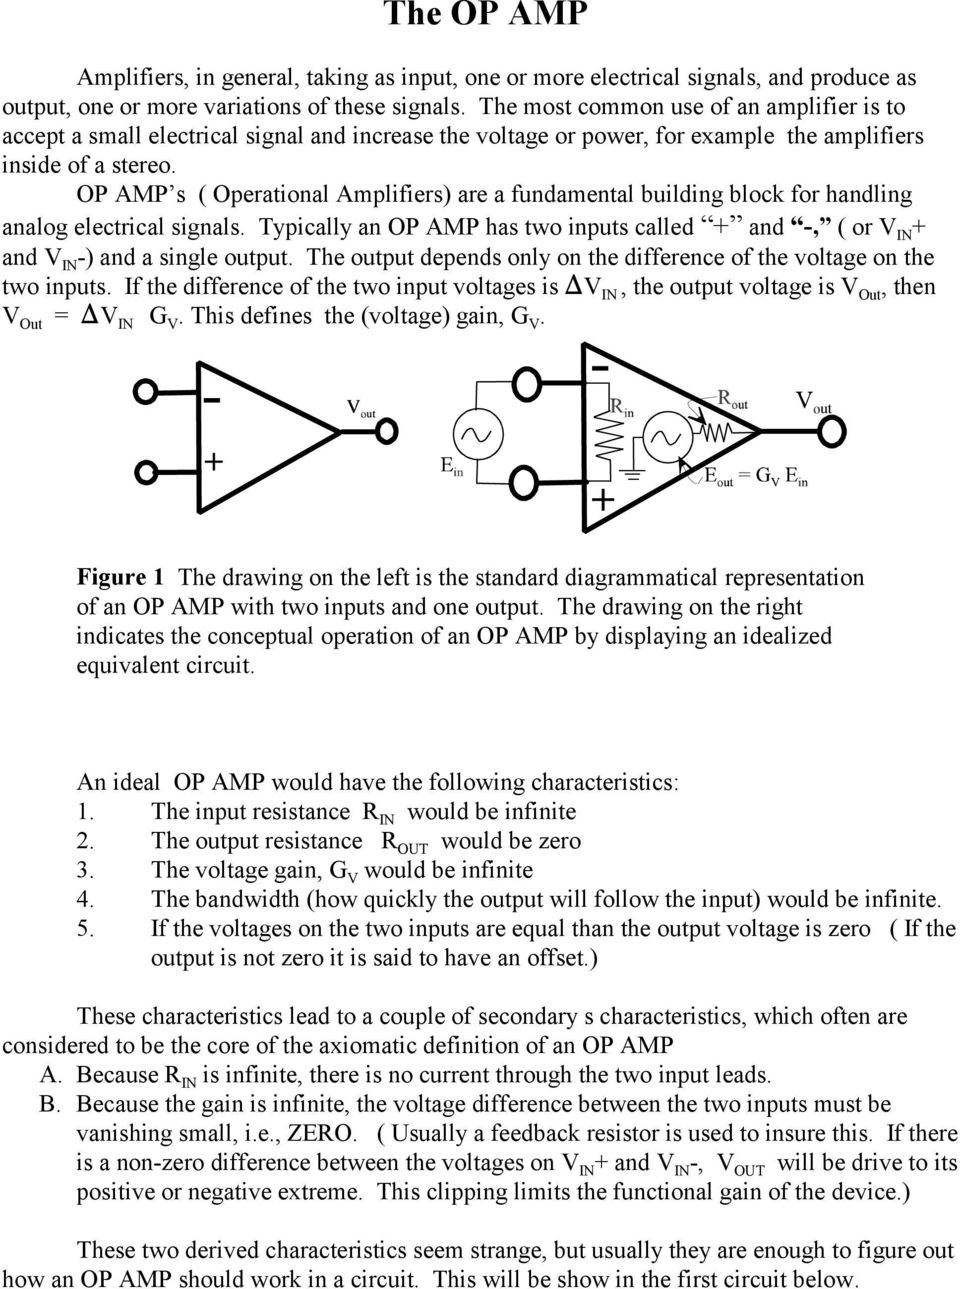 The Op Amp Figure 1 Pdf Introduction To 741 Operational Amplifier Tutorial Electronic S Amplifiers Are A Fundamental Building Block For Handling Analog Electrical